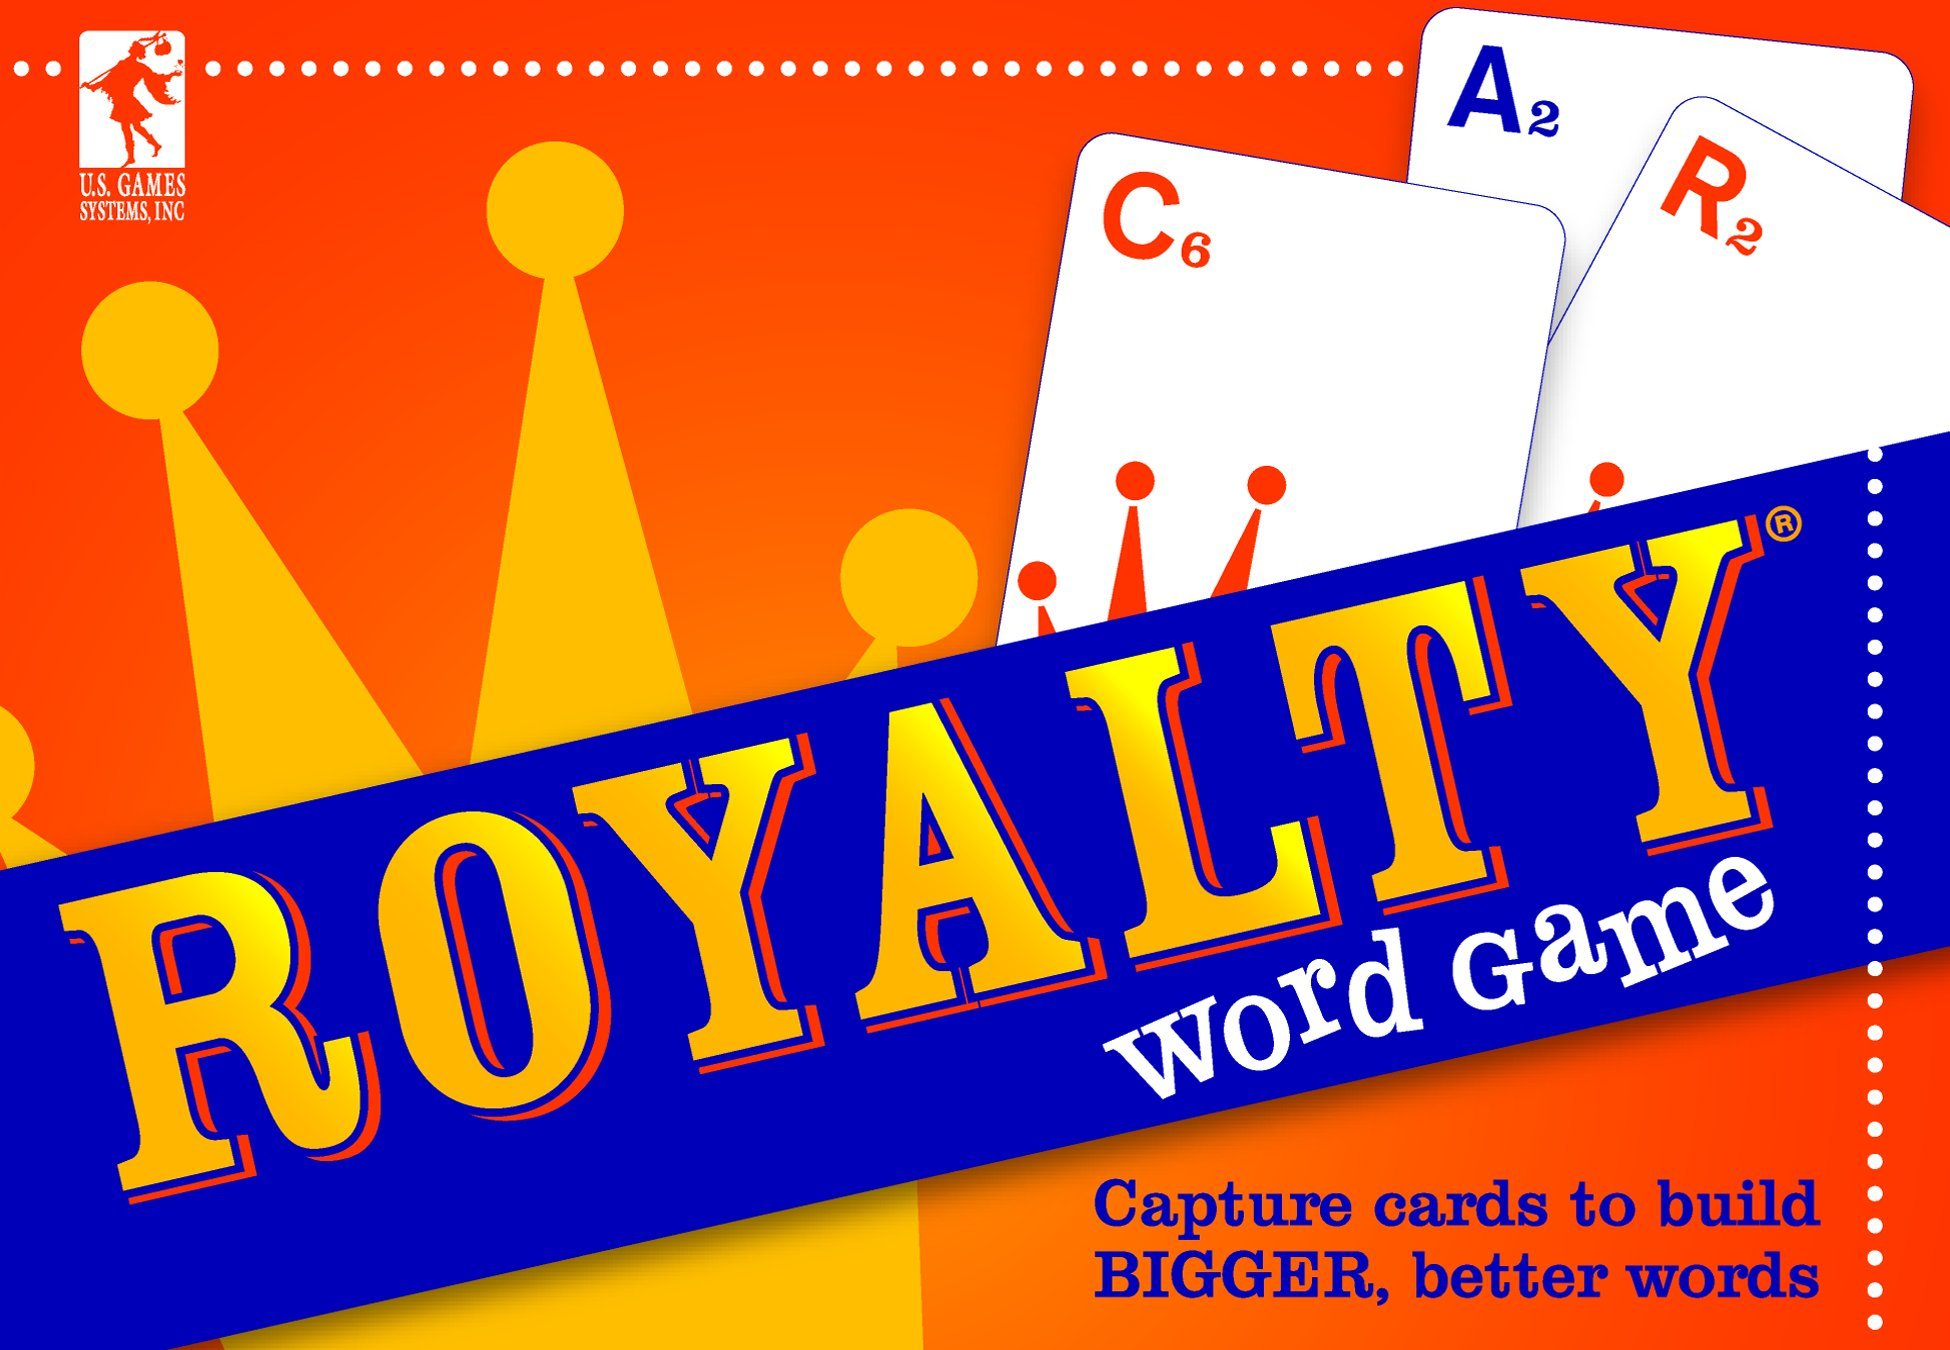 Royalty Word-Building, Word-Capturing Card Game: Not Available ...